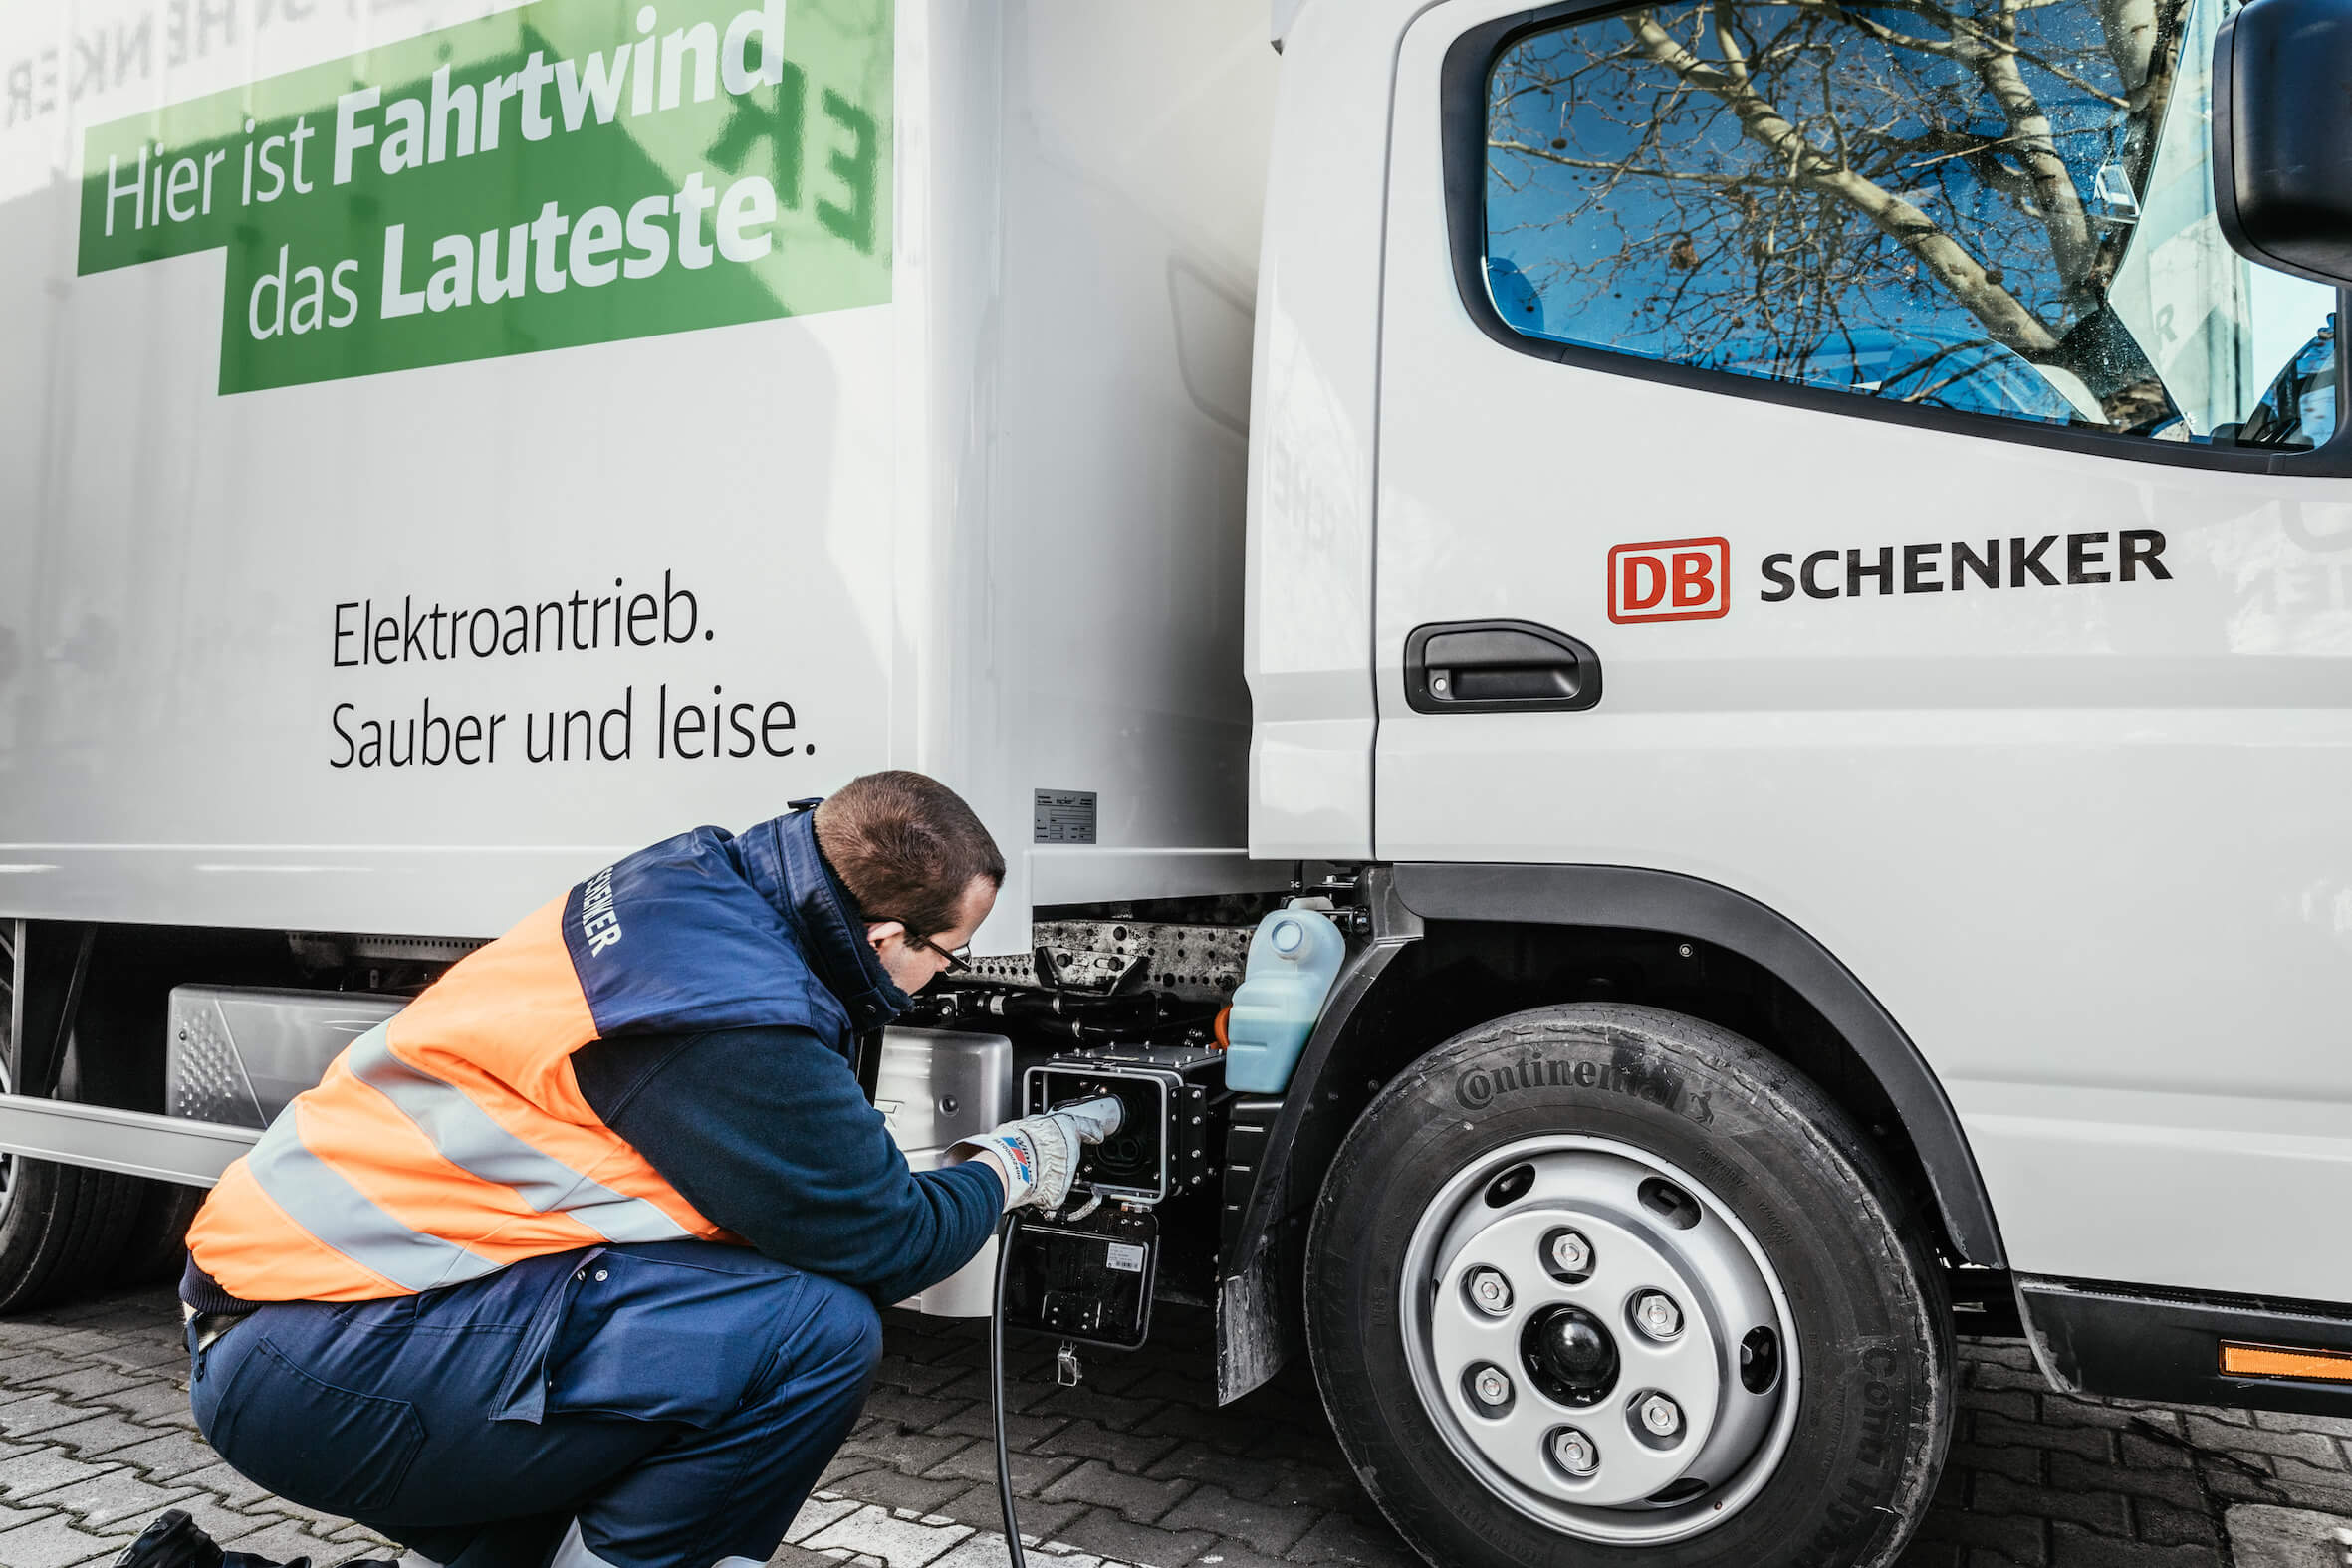 The vehicle is charged via a side-mounted charging station. © DB Schenker/Michael Neuhaus